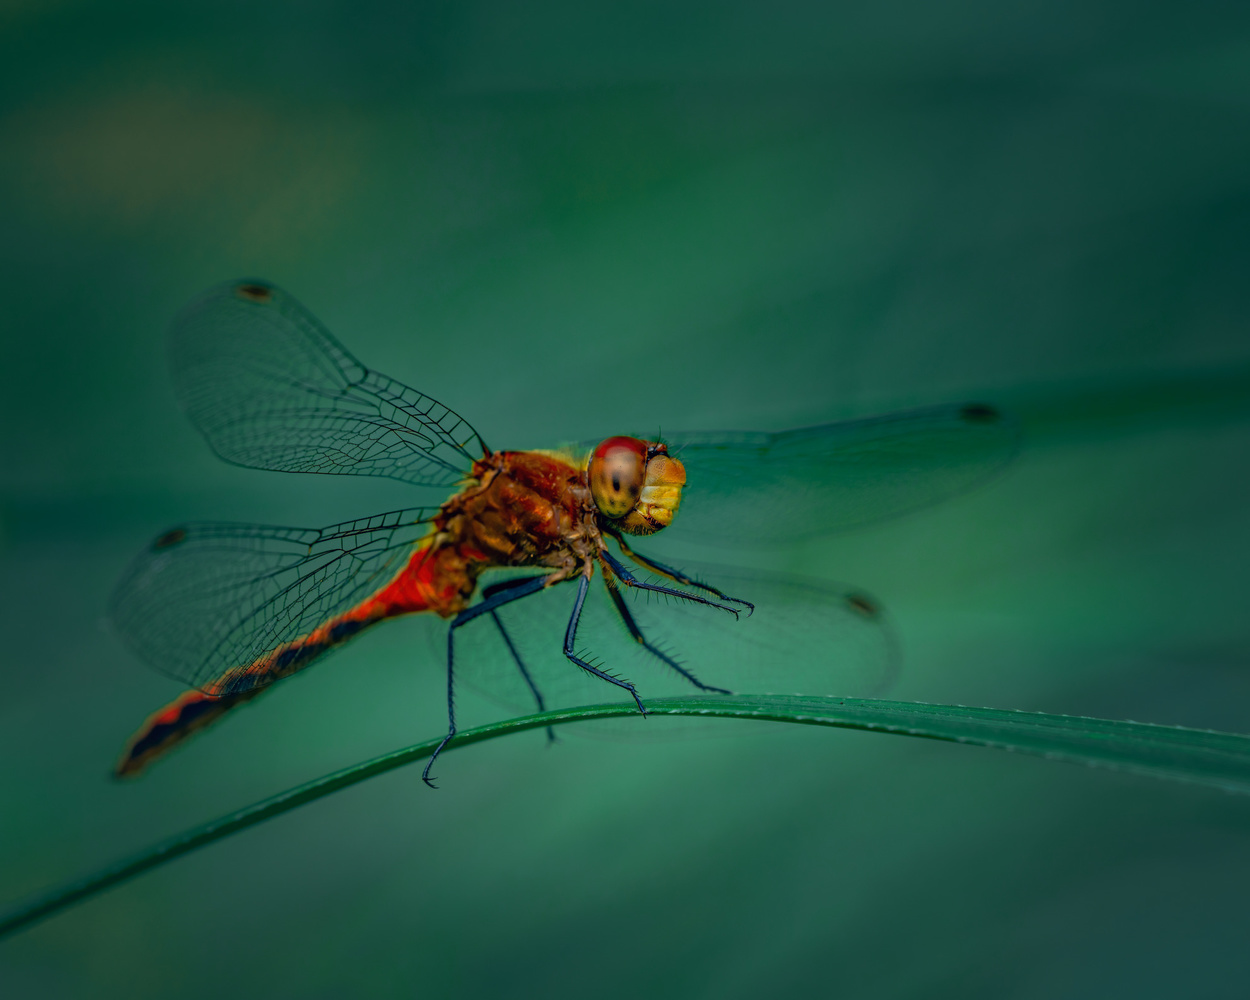 Dragonfly by Skyler Ewing